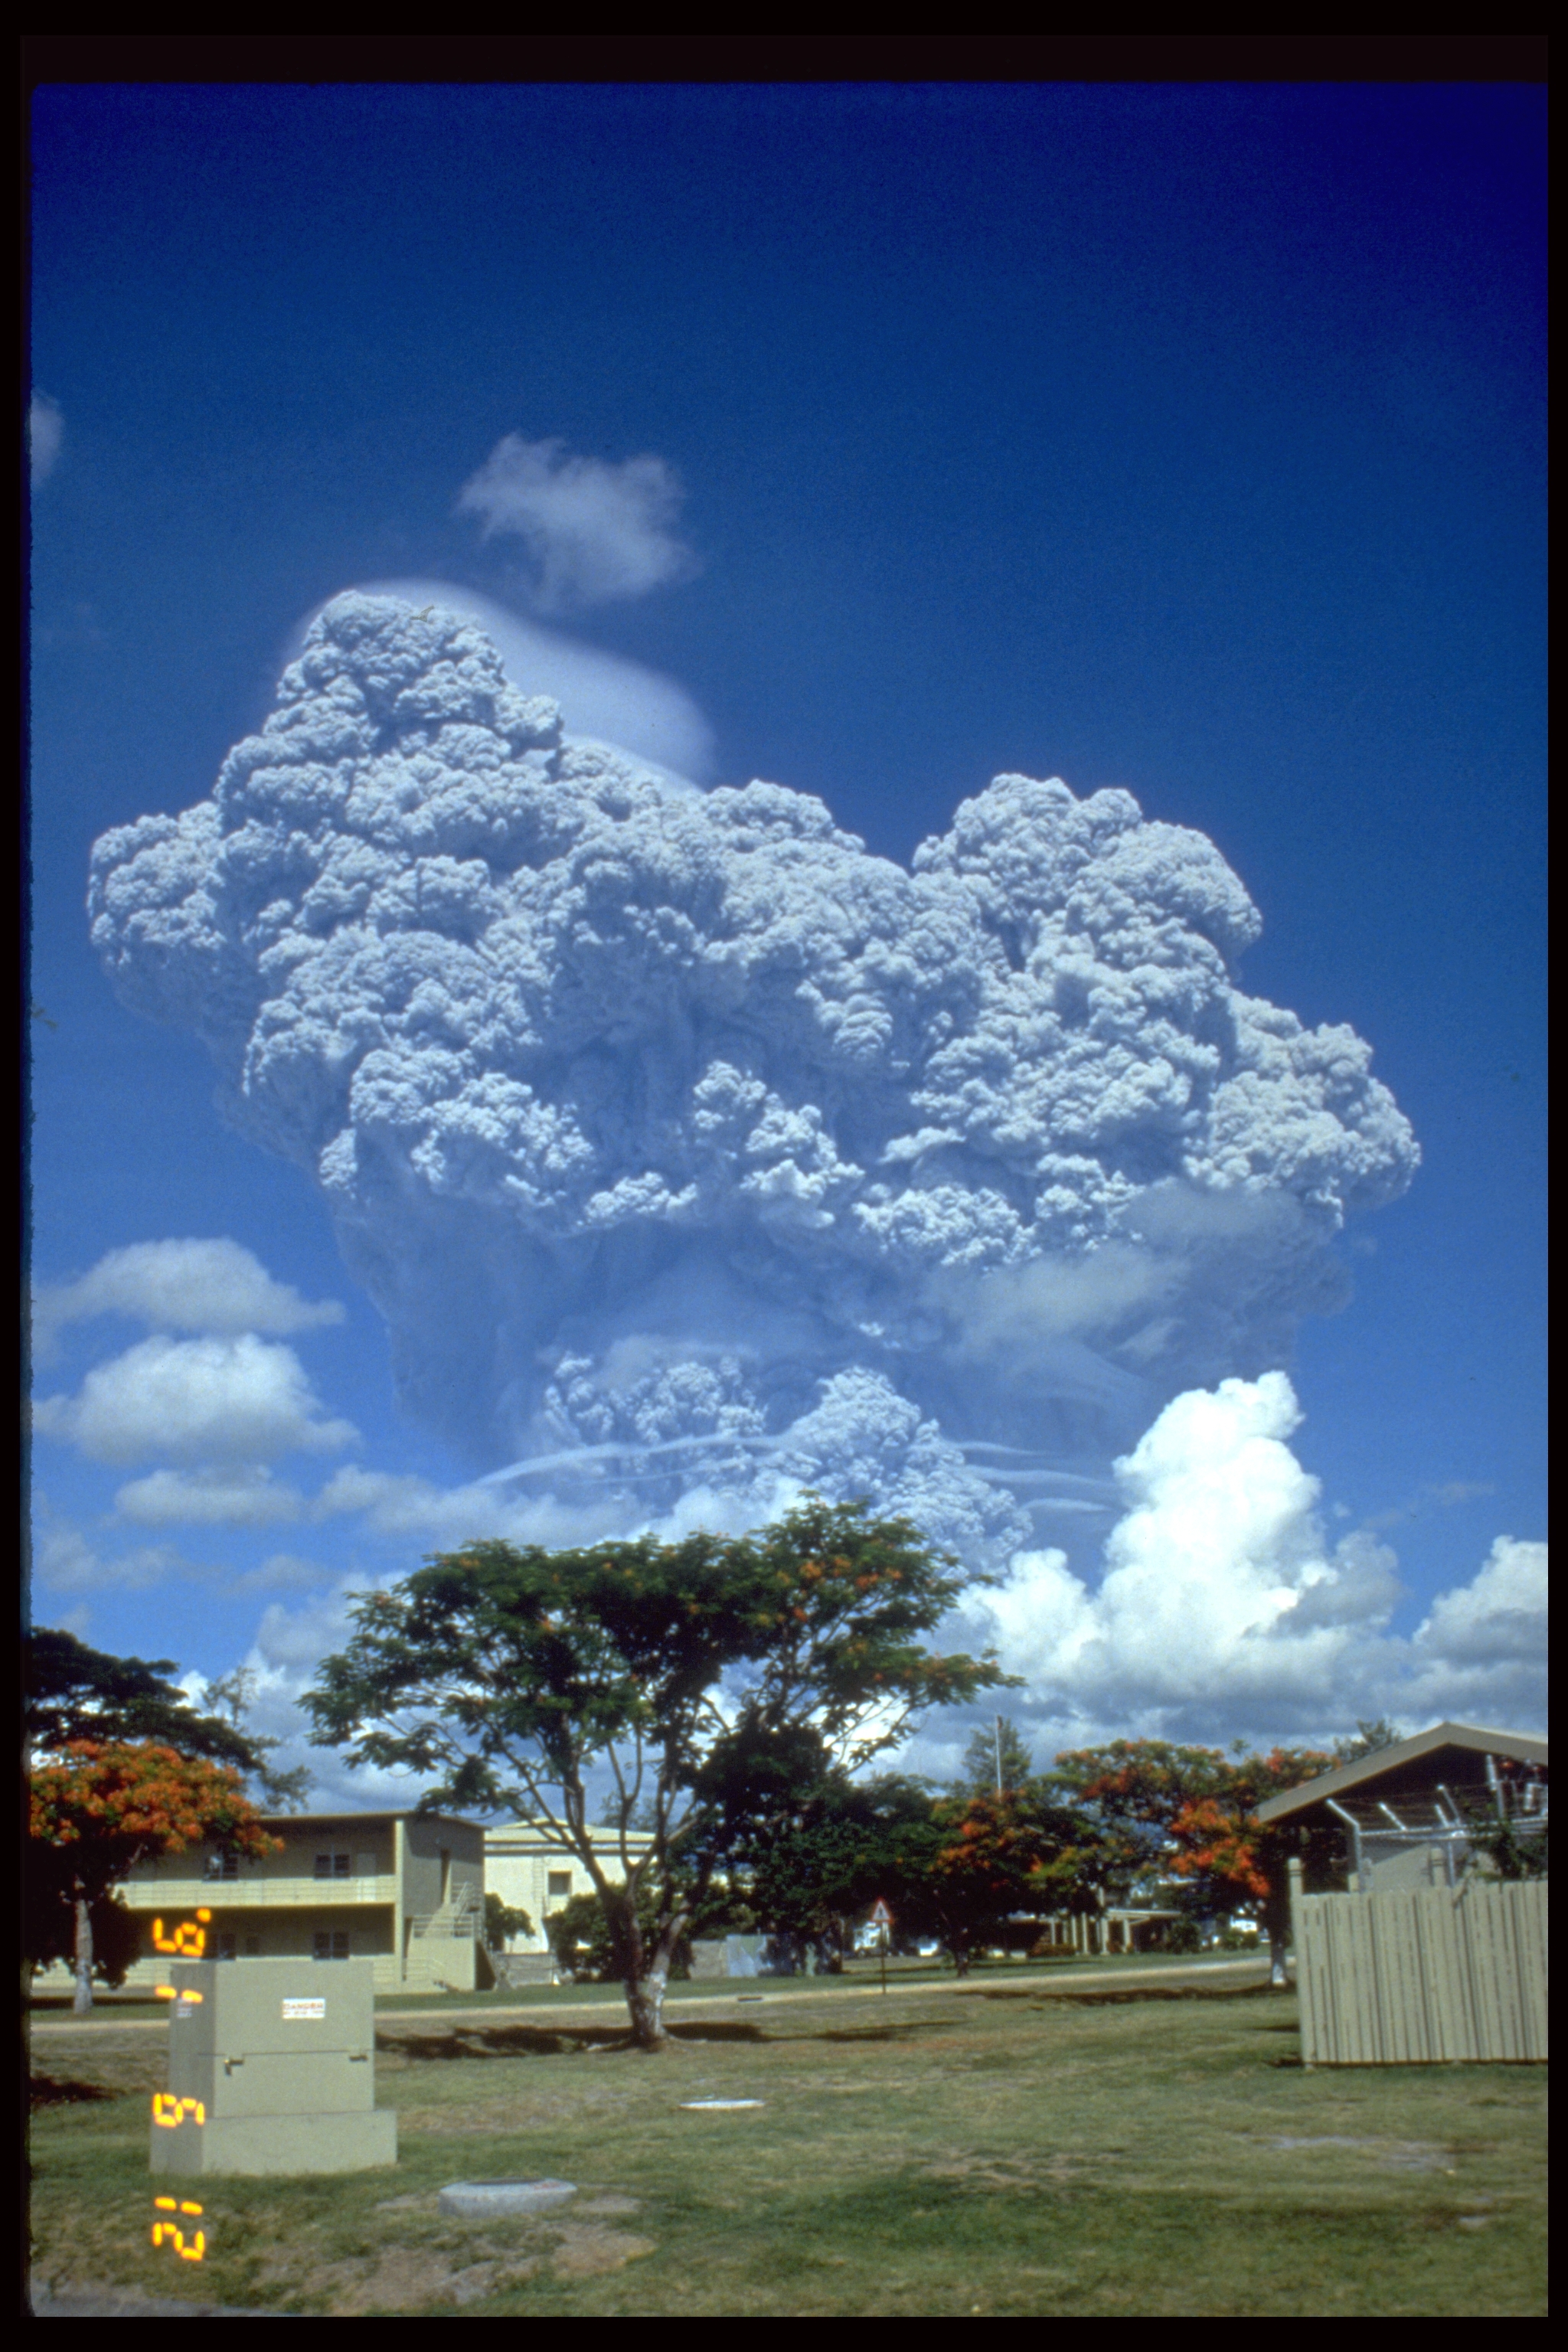 http://www.nasa.gov/images/content/124861main_Pinatubo91_eruption_from_clark_air_base_06-12-91.jpg